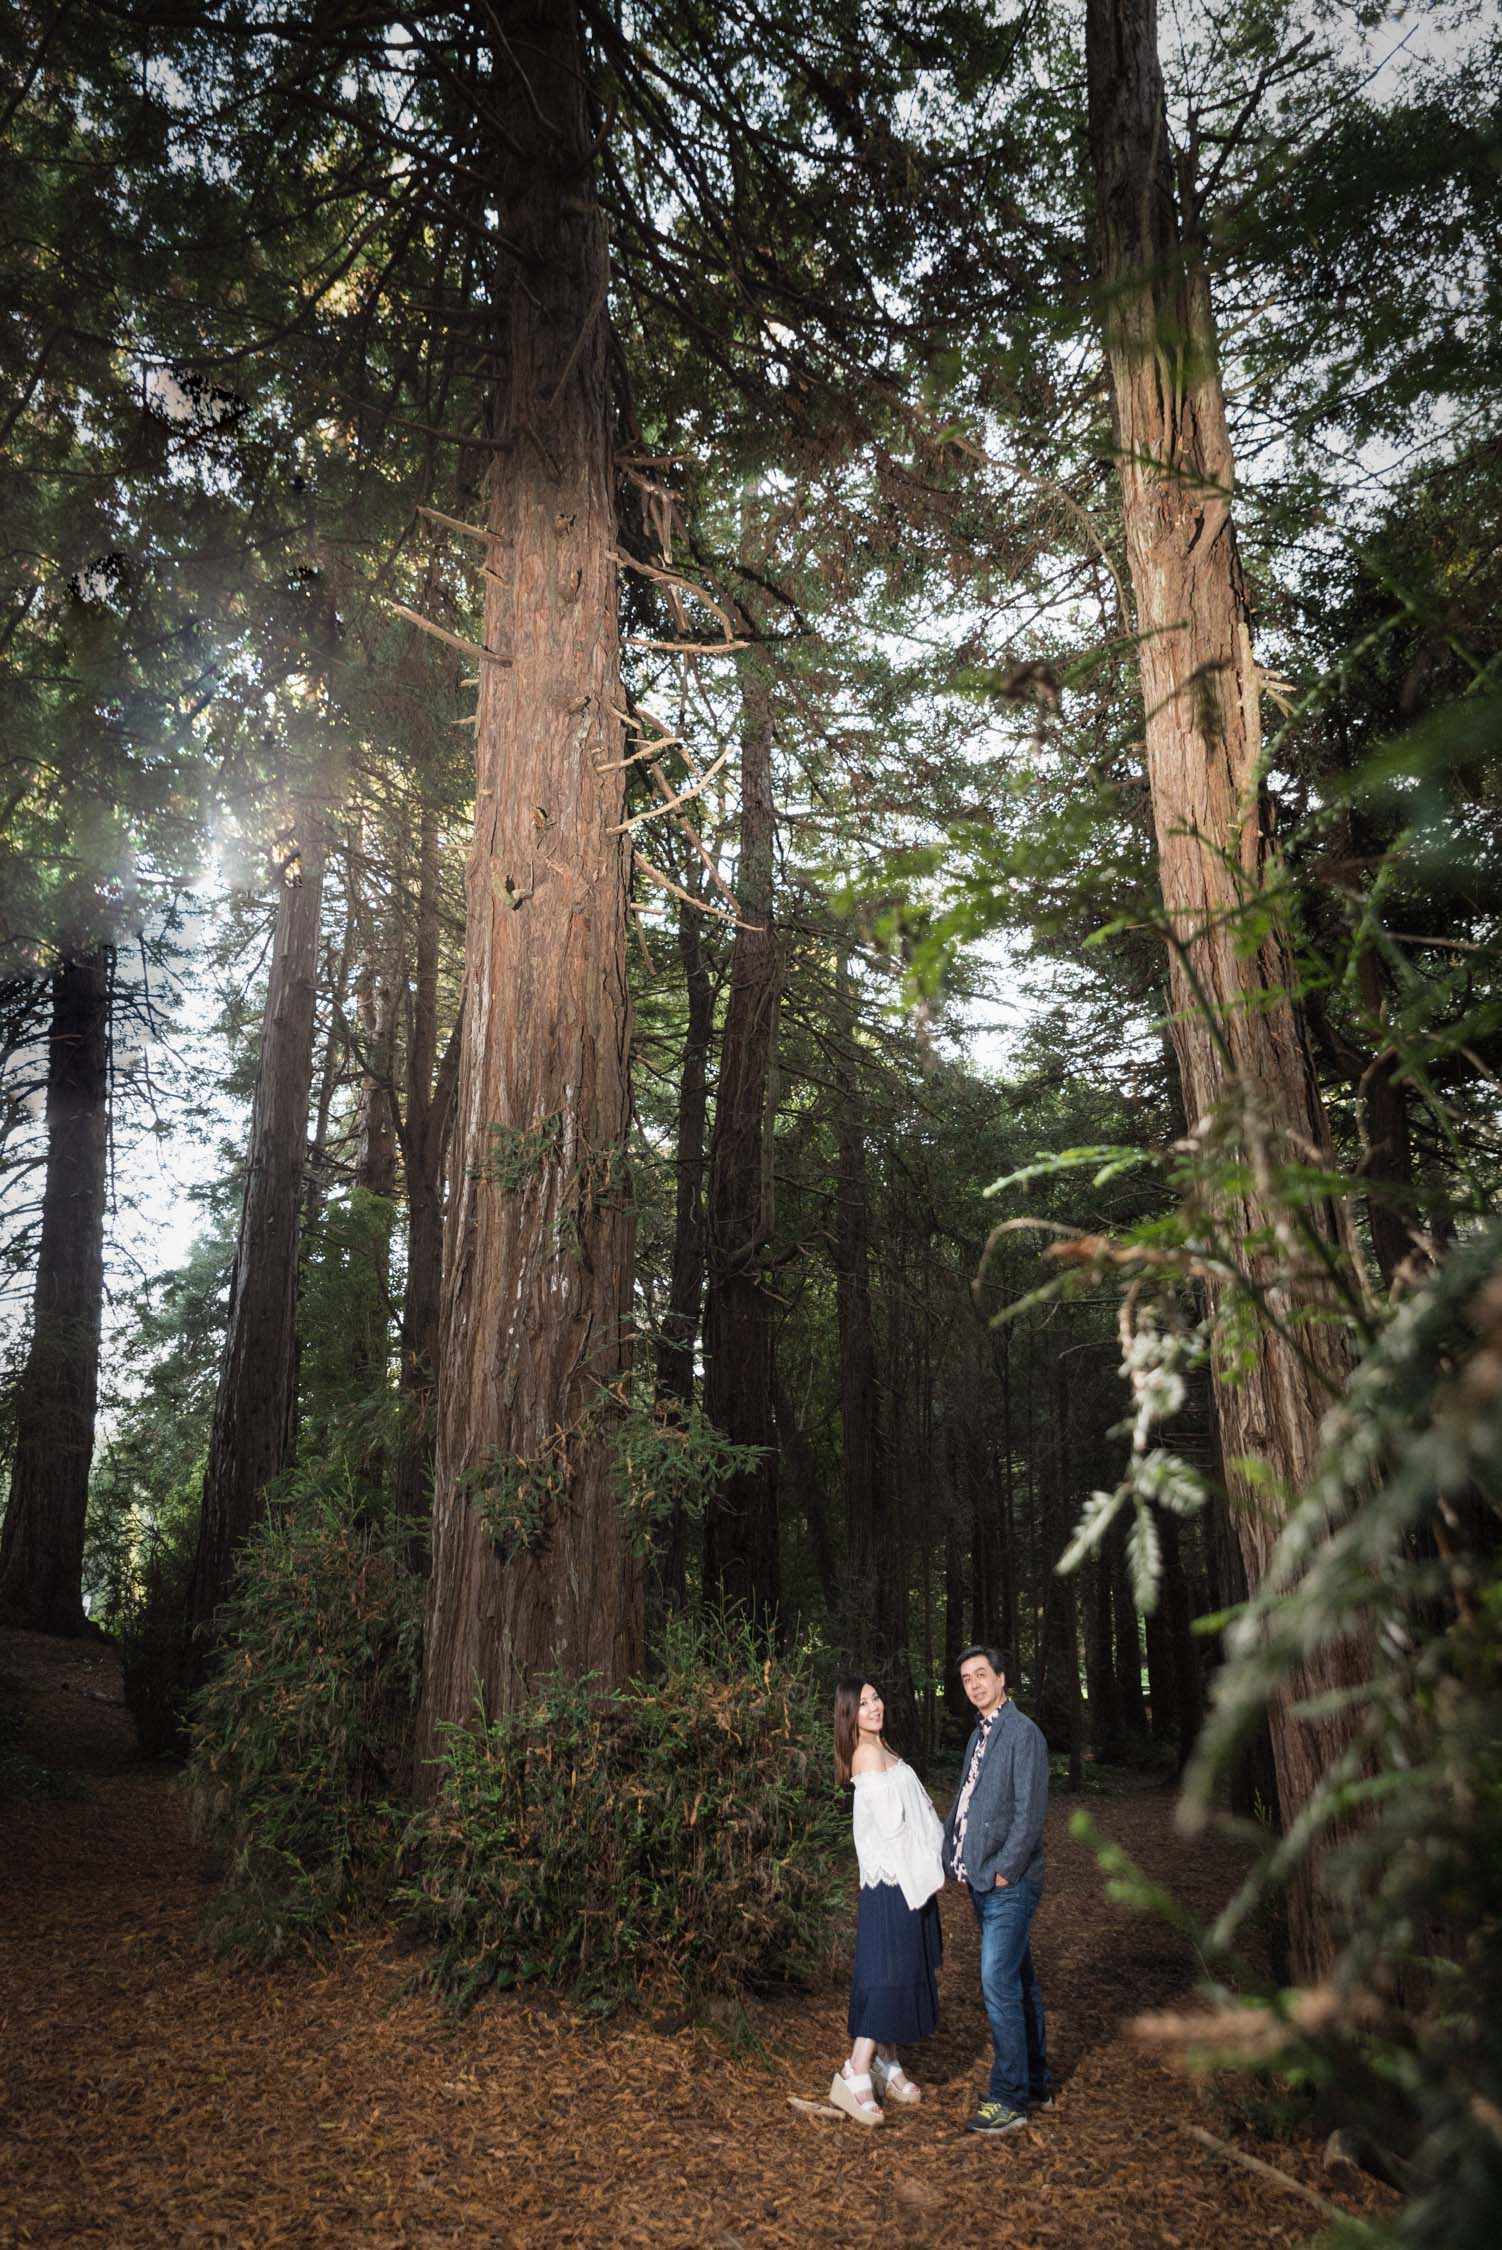 20_goldengatepark_maternity_photographer.jpg